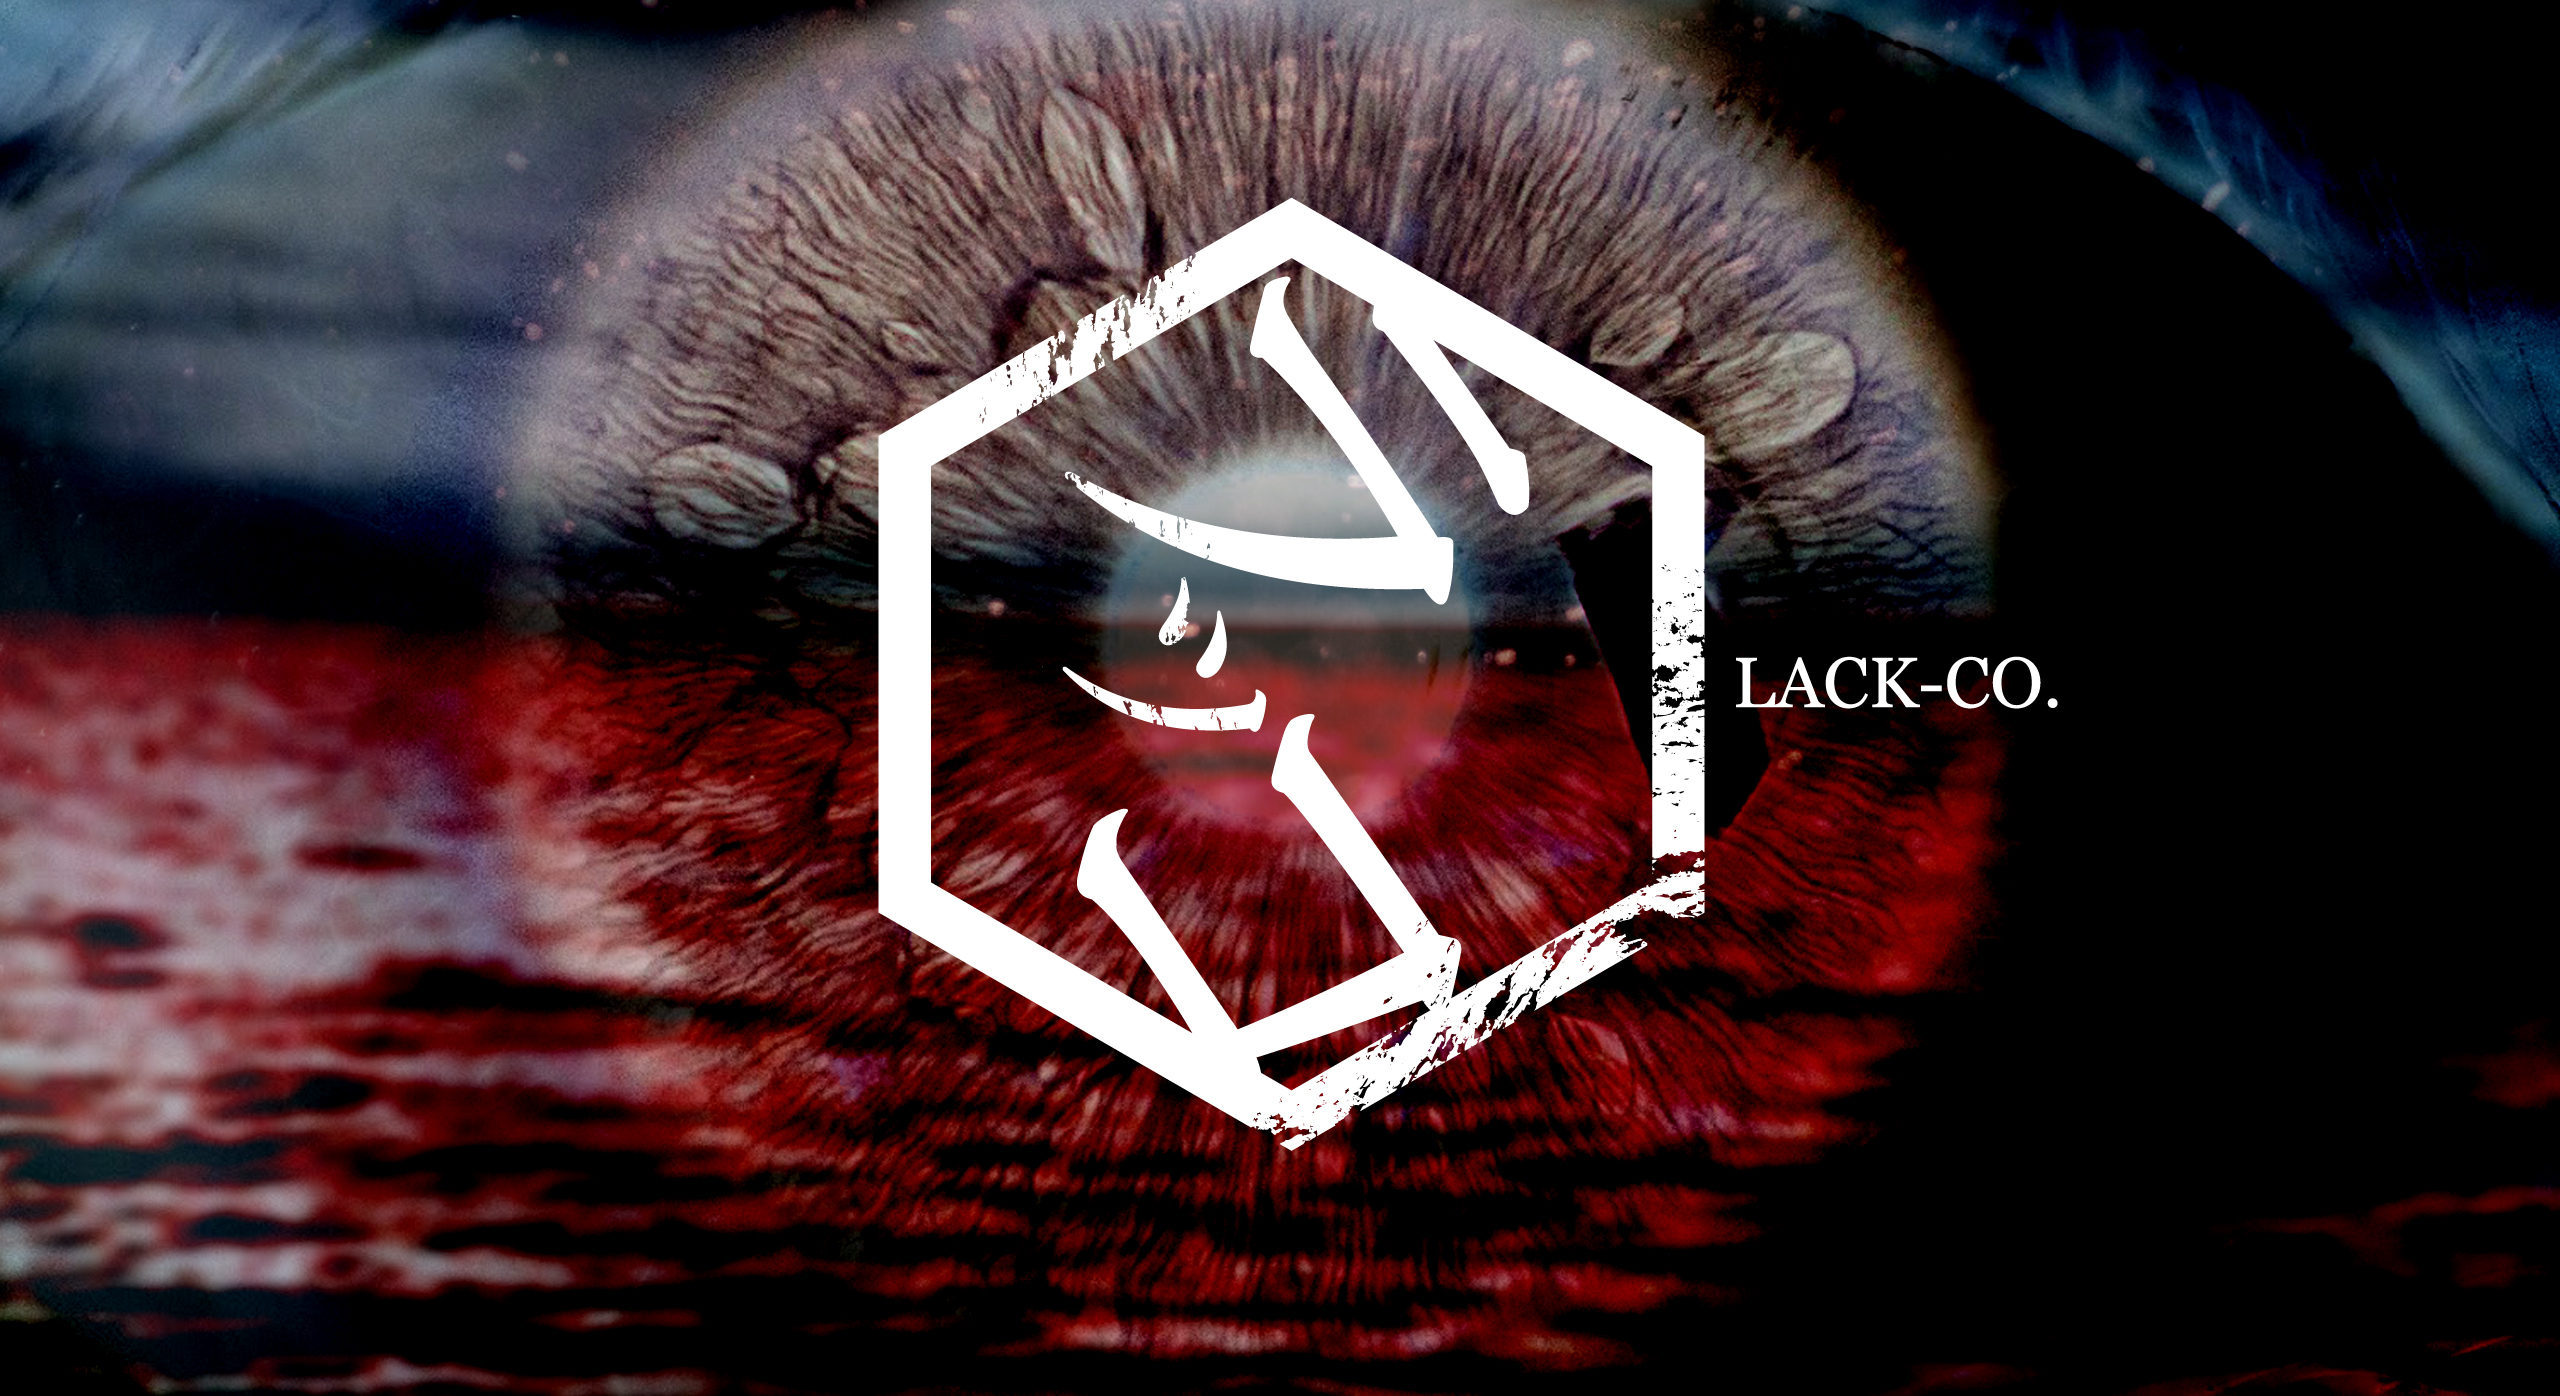 New band: Lack-co.